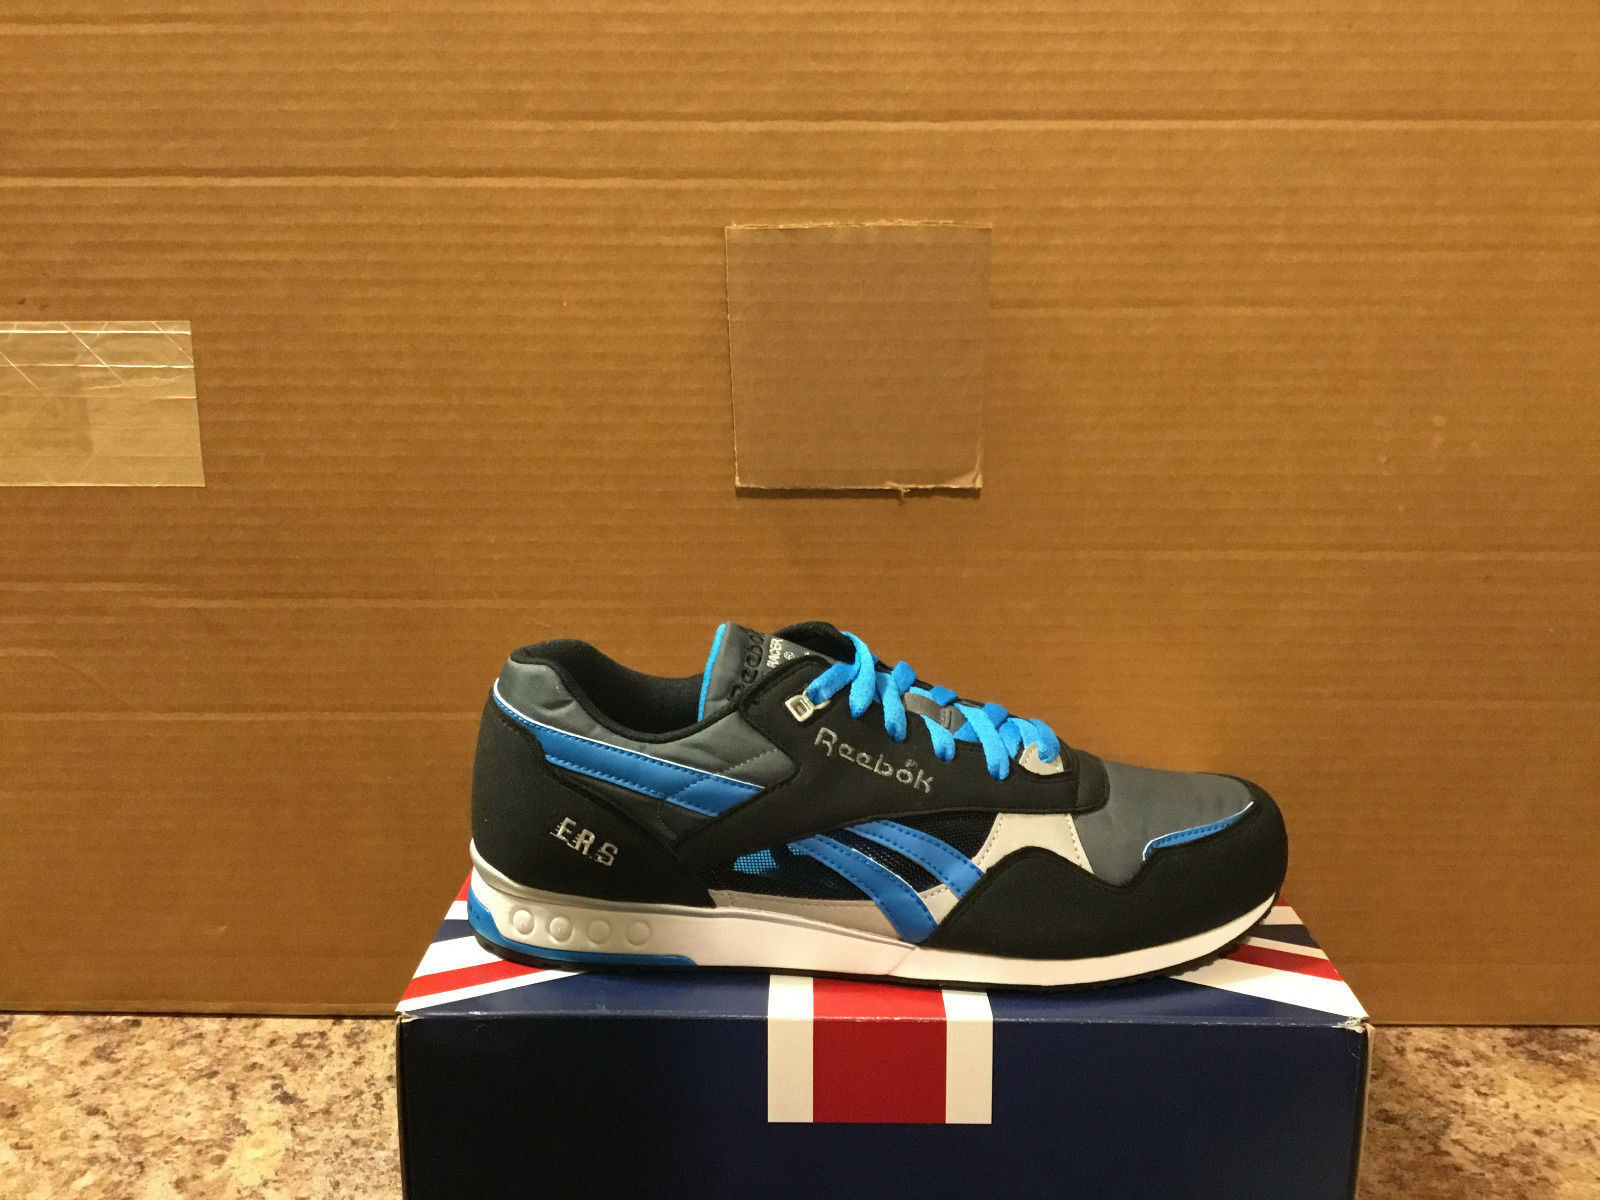 REEBOK ERS RACER style 172215 men's size US10-VERY NICE COLOR COMBO